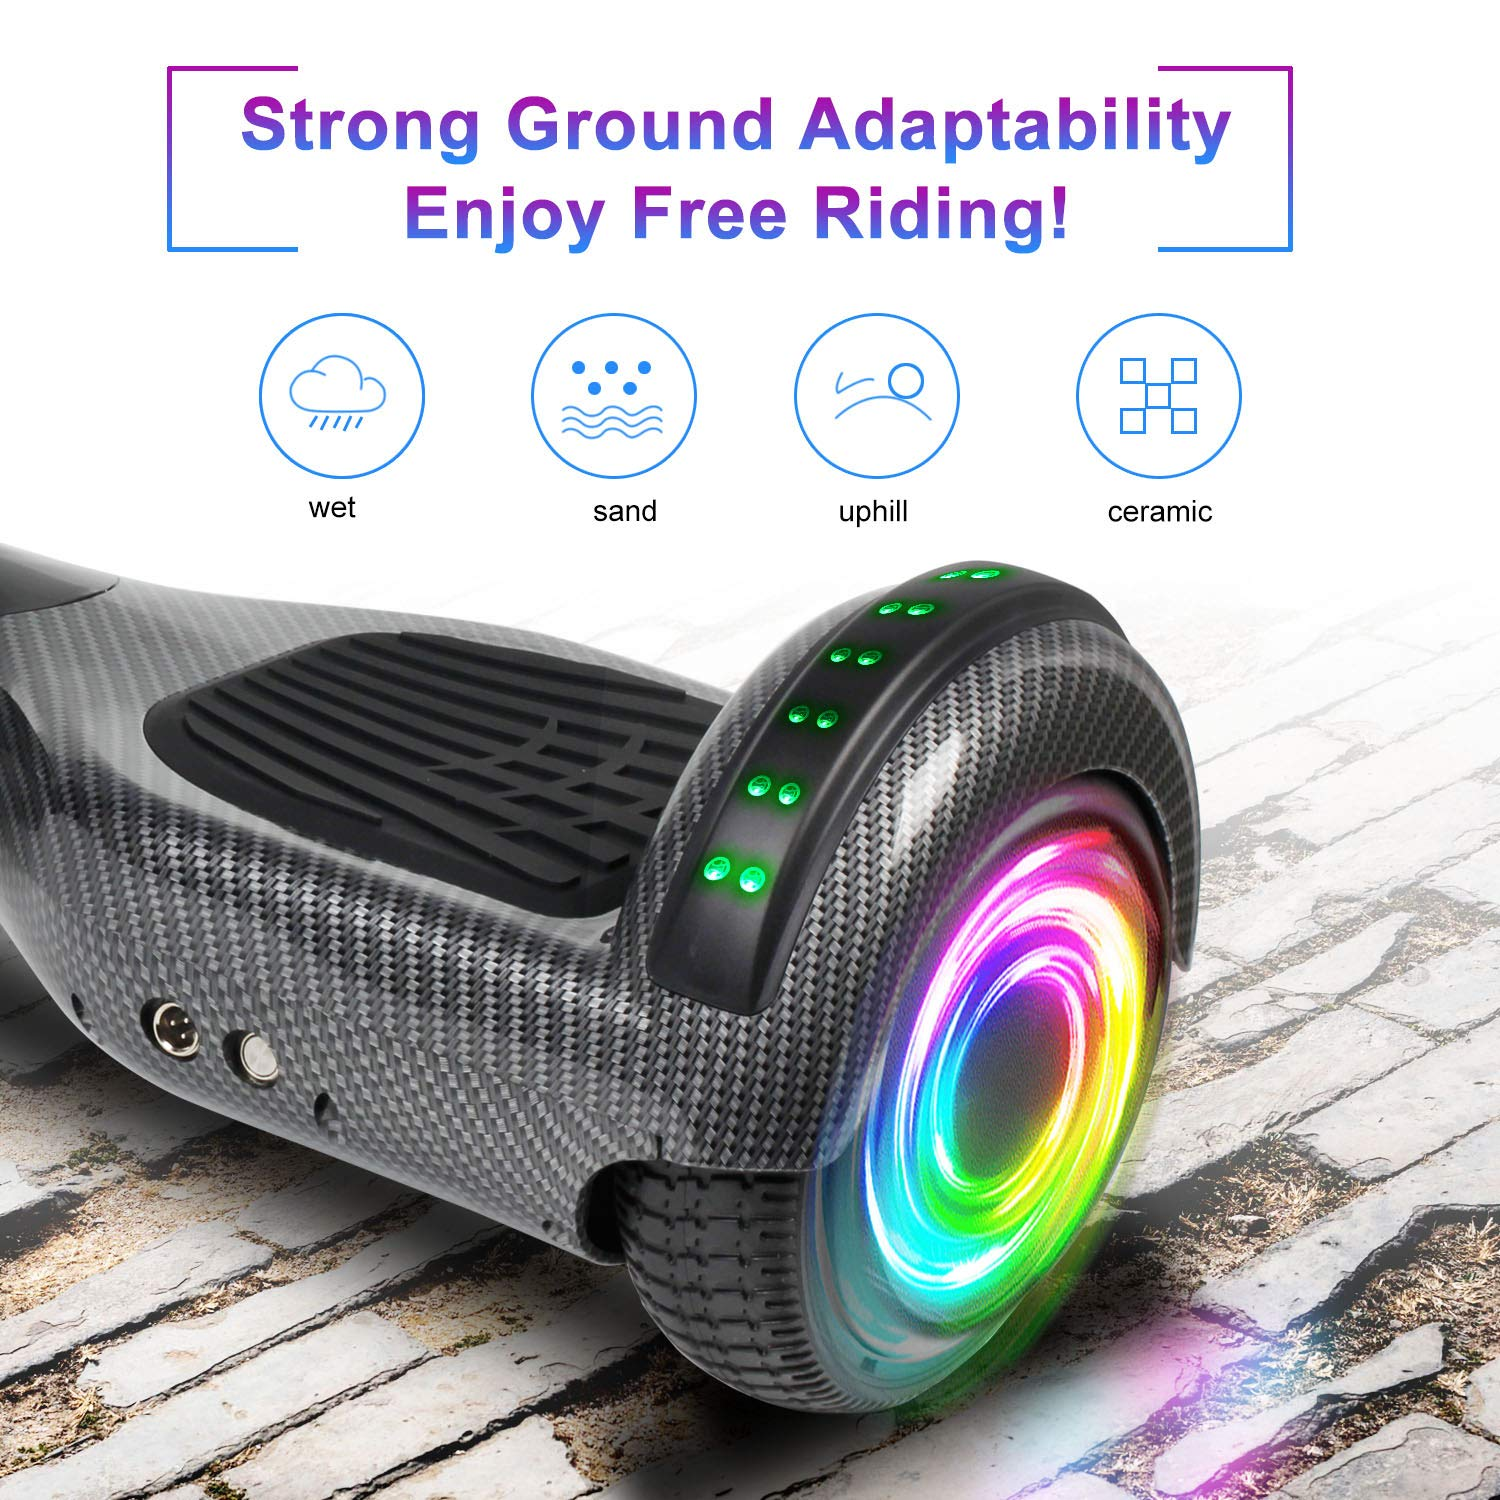 SISIGAD Hoverboard Self Balancing Scooter 6.5'' Two-Wheel Self Balancing Hoverboard with Bluetooth Speaker and LED Lights Electric Scooter for Adult Kids Gift UL 2272 Certified - Carbon Black by SISIGAD (Image #3)